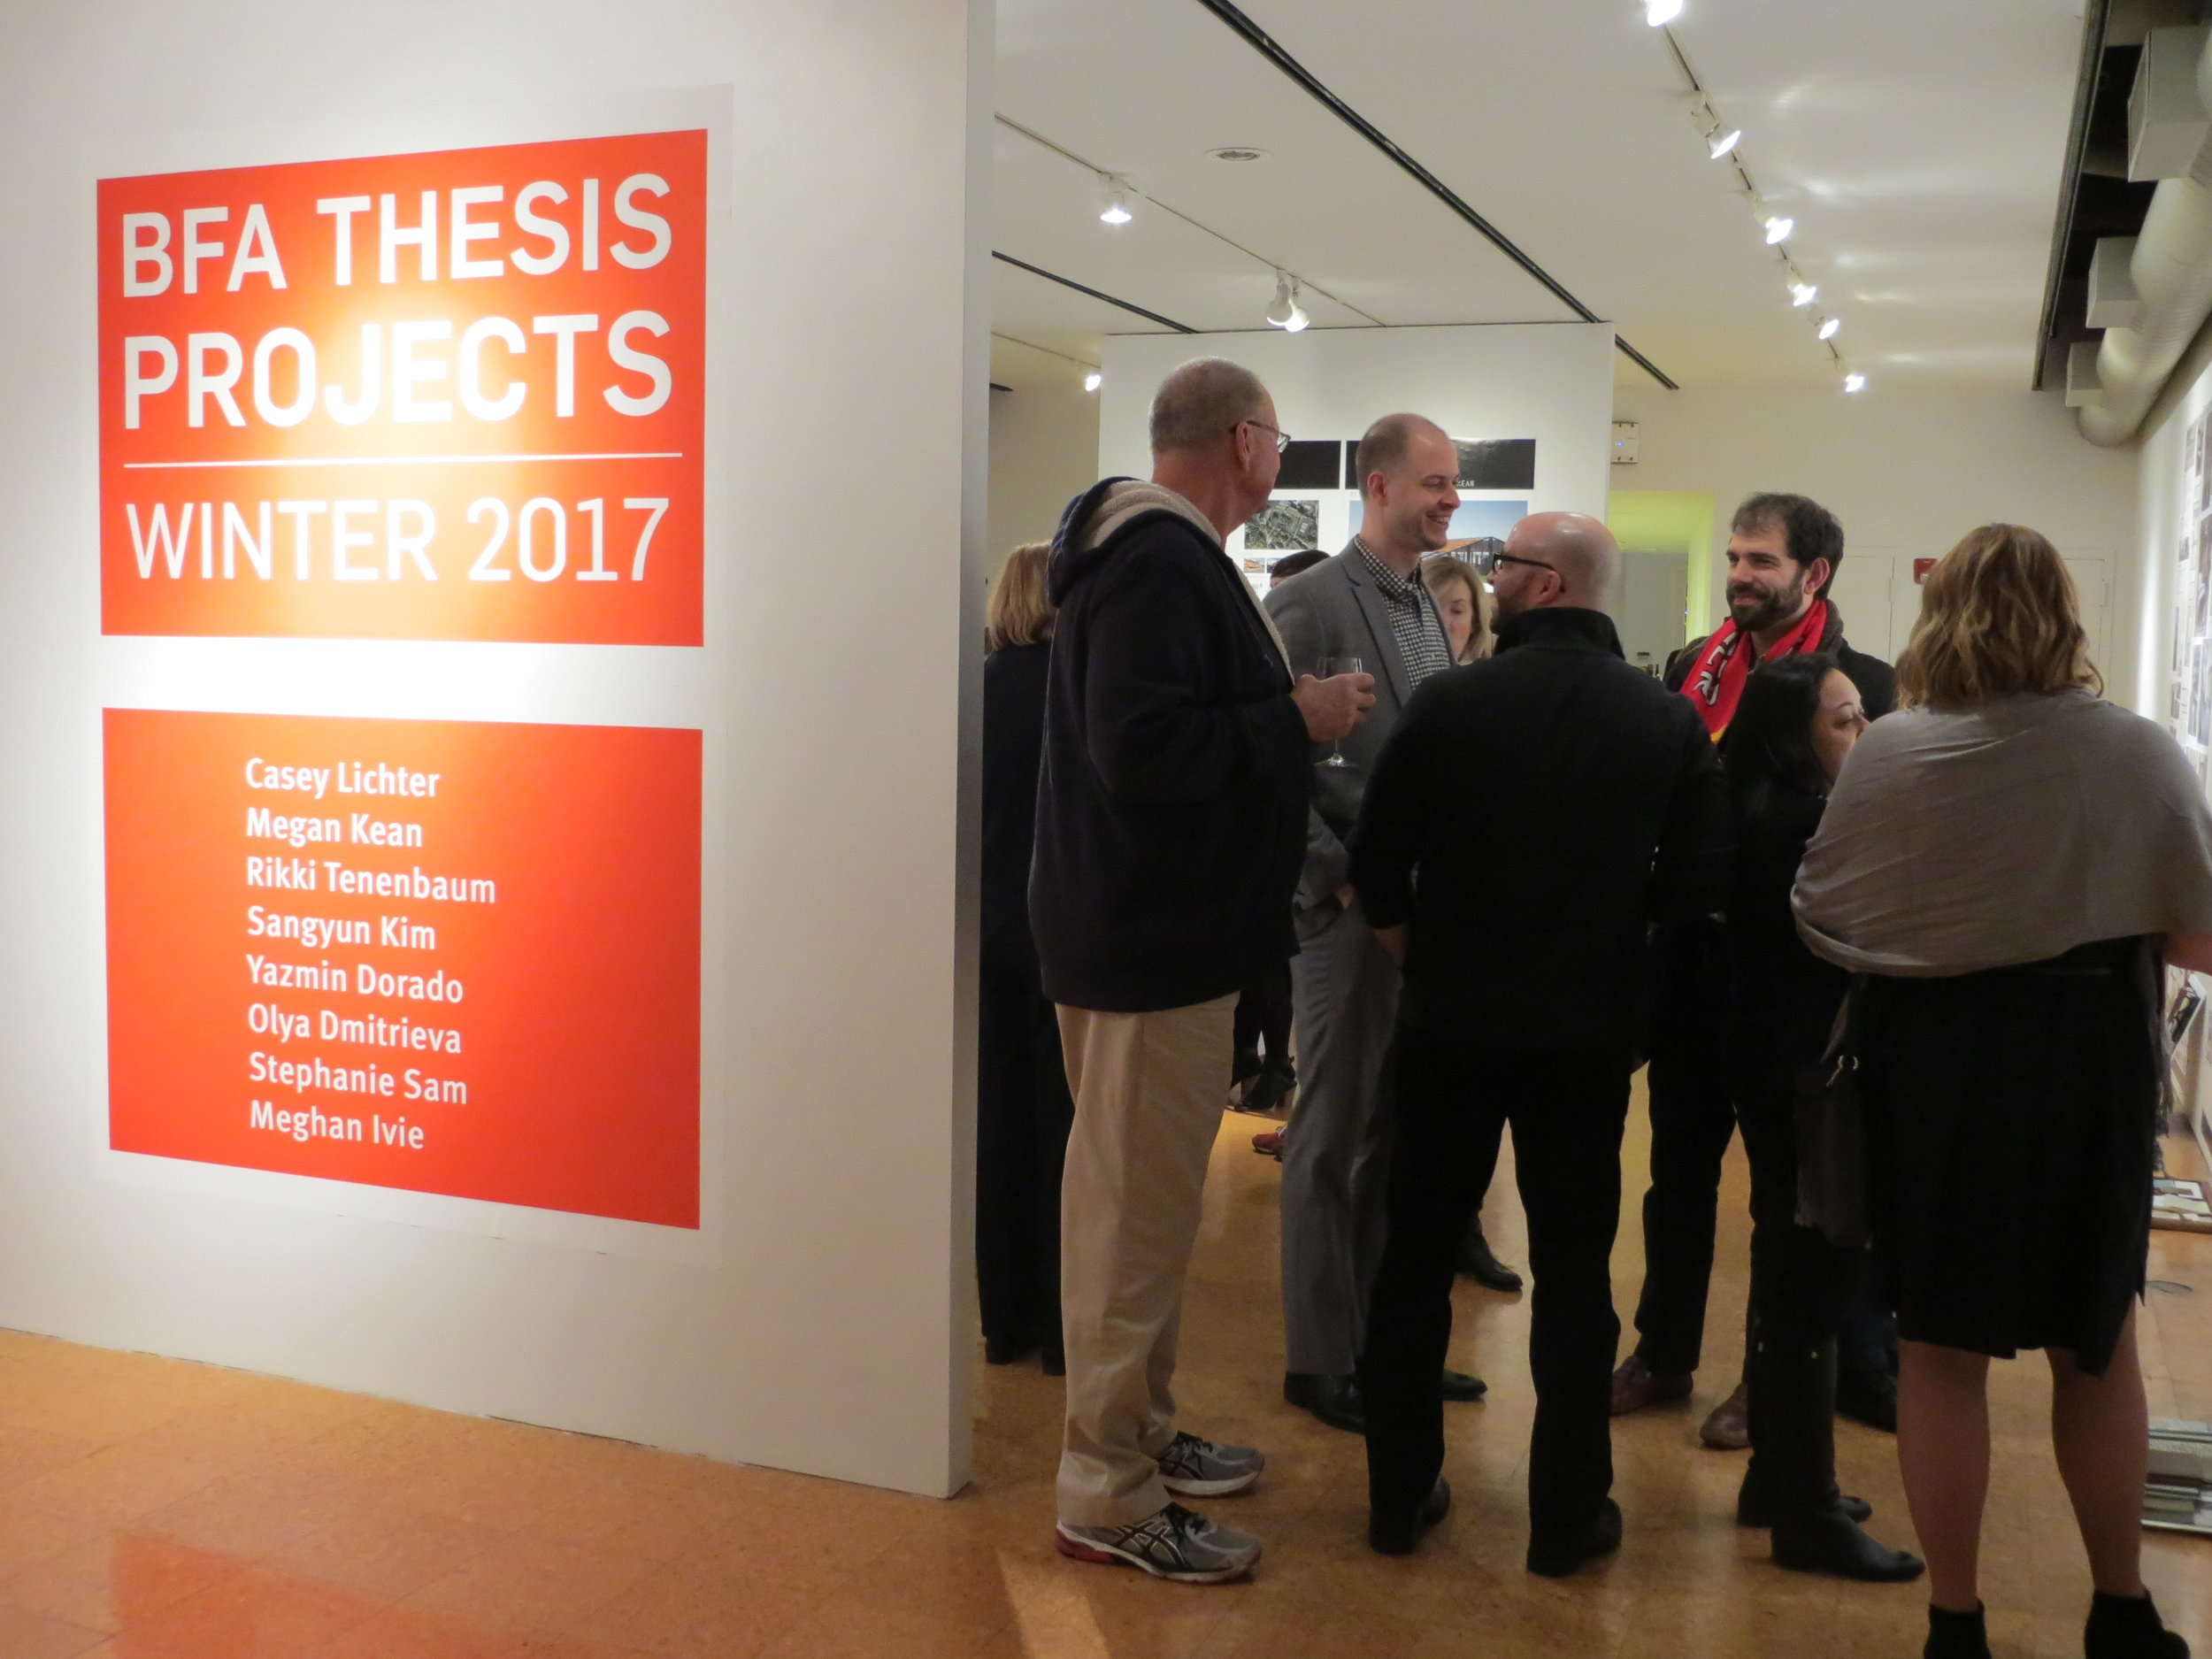 bfa-2017-winter-thesis-projects-exhibition_32373015300_o.jpg